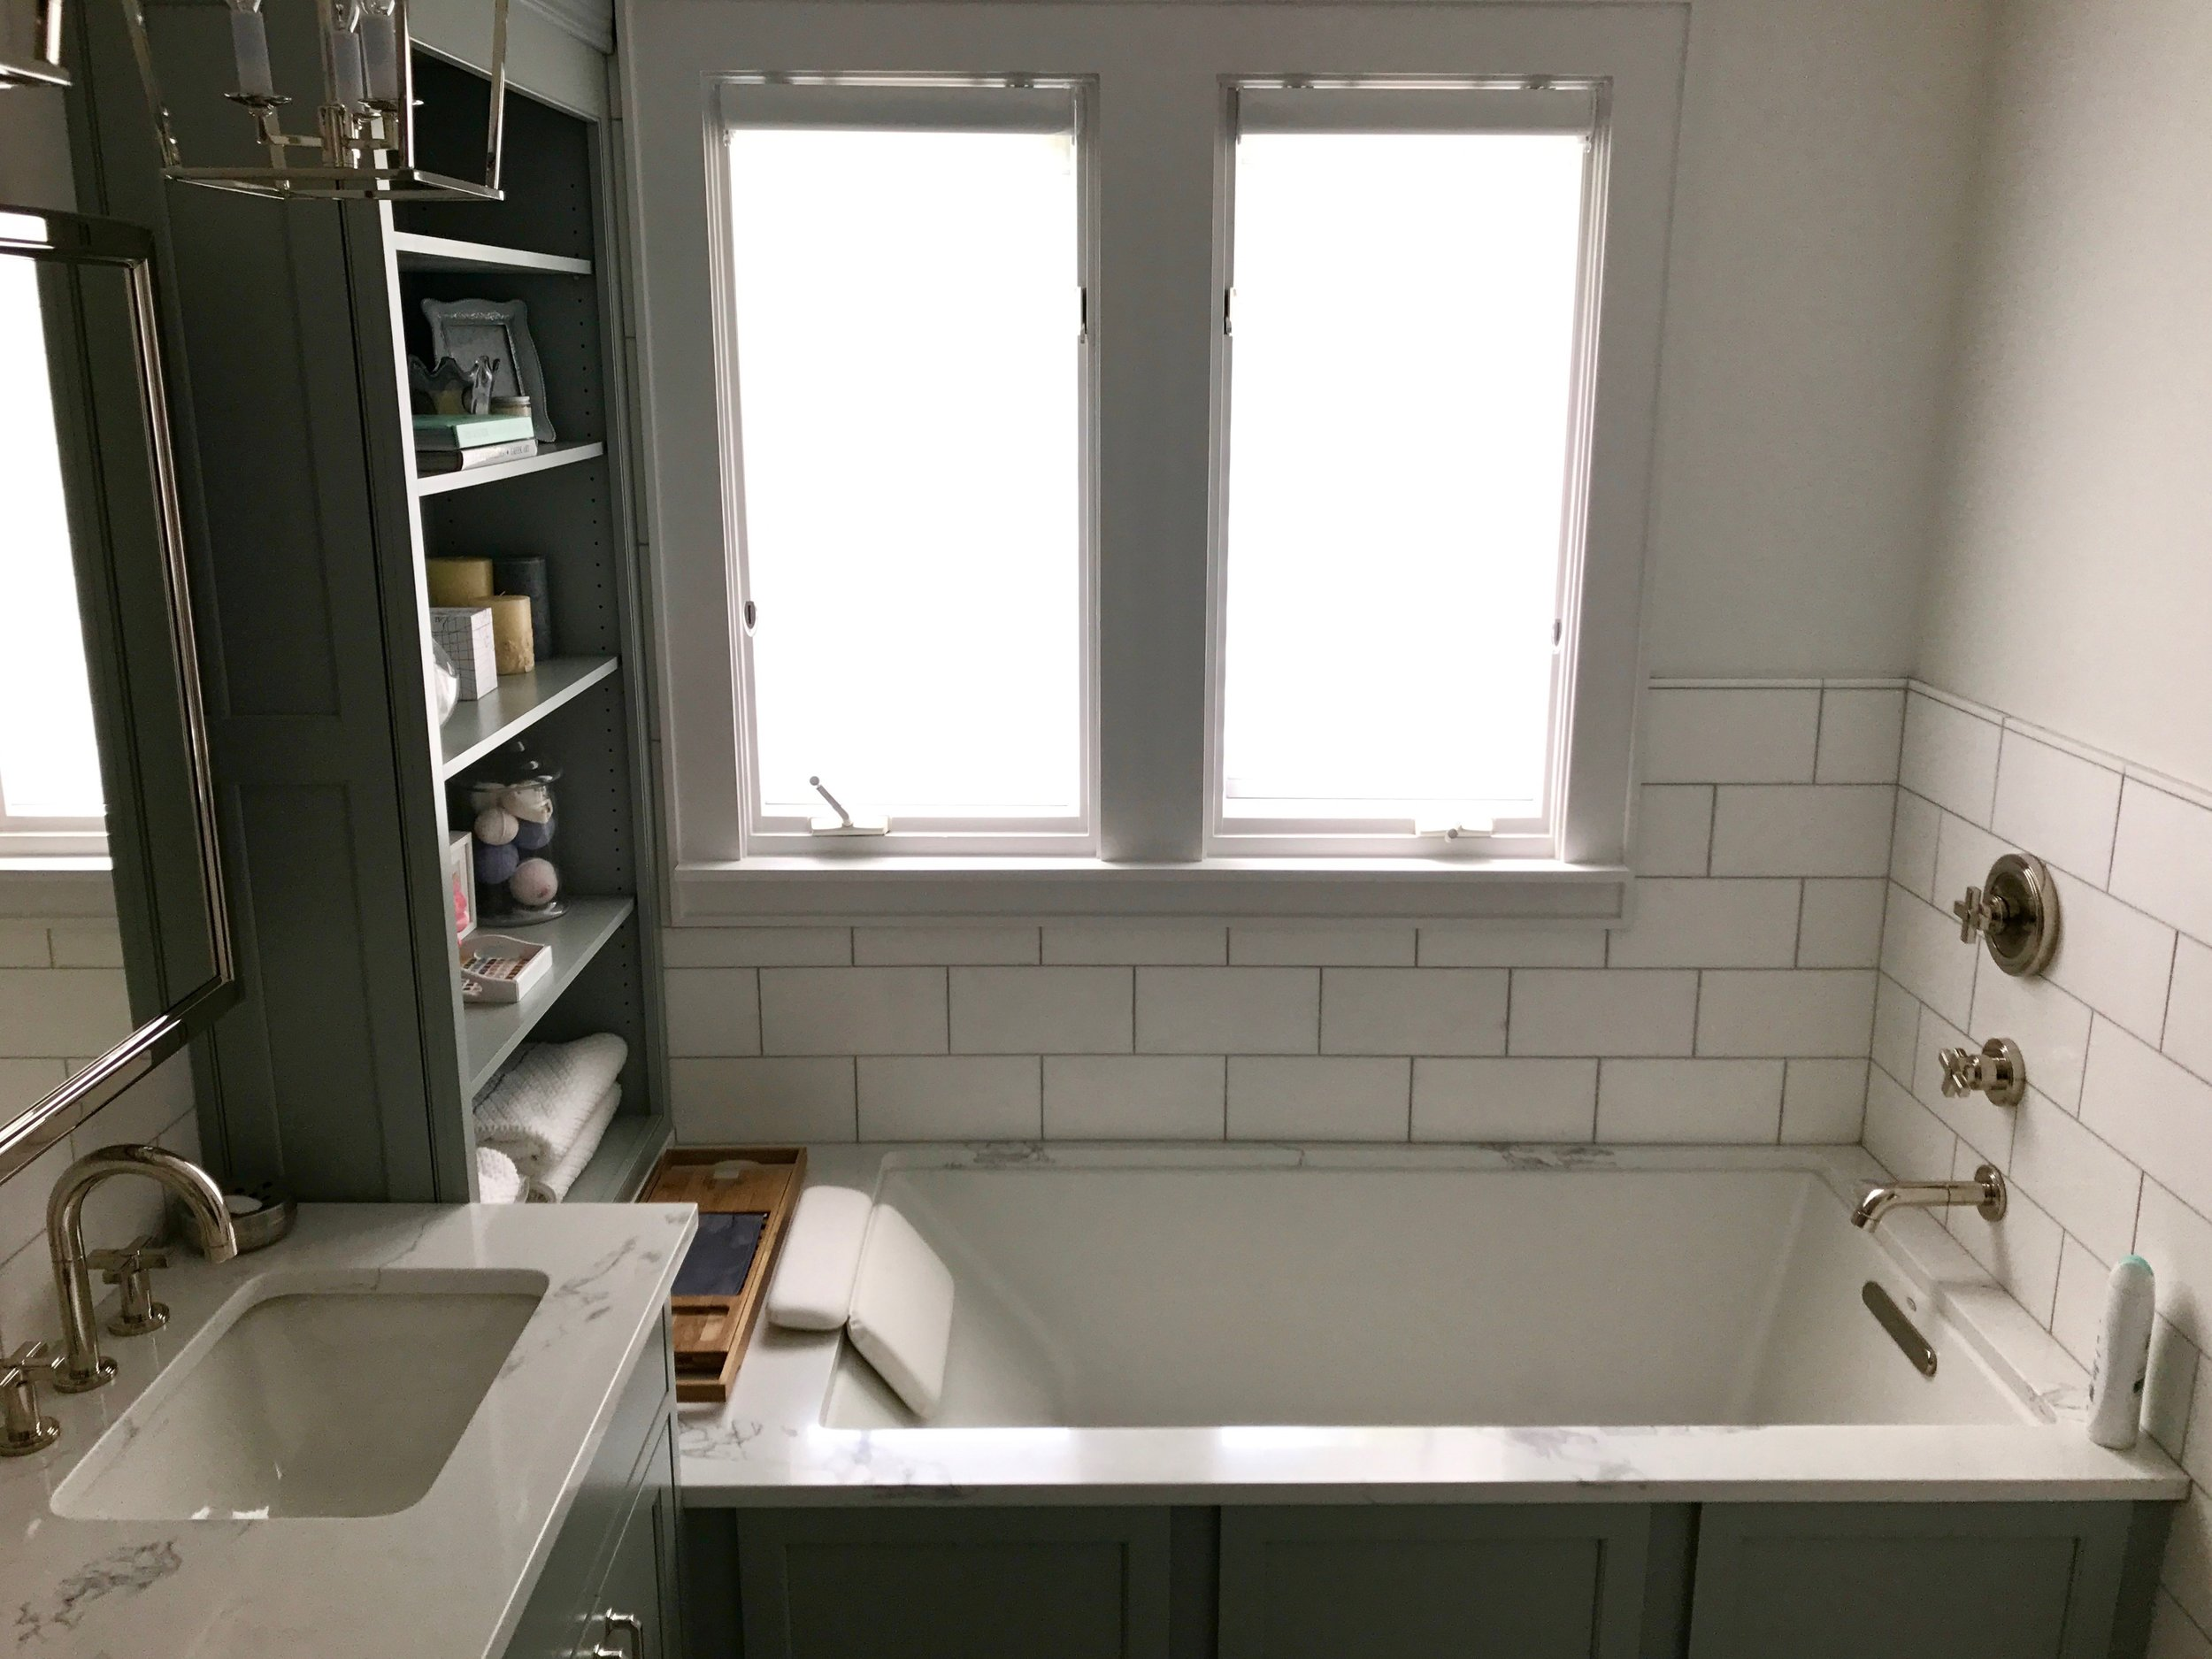 The new tub and functional cabinetry. The country curtains were replaced with light-softening semi-opaque shades.